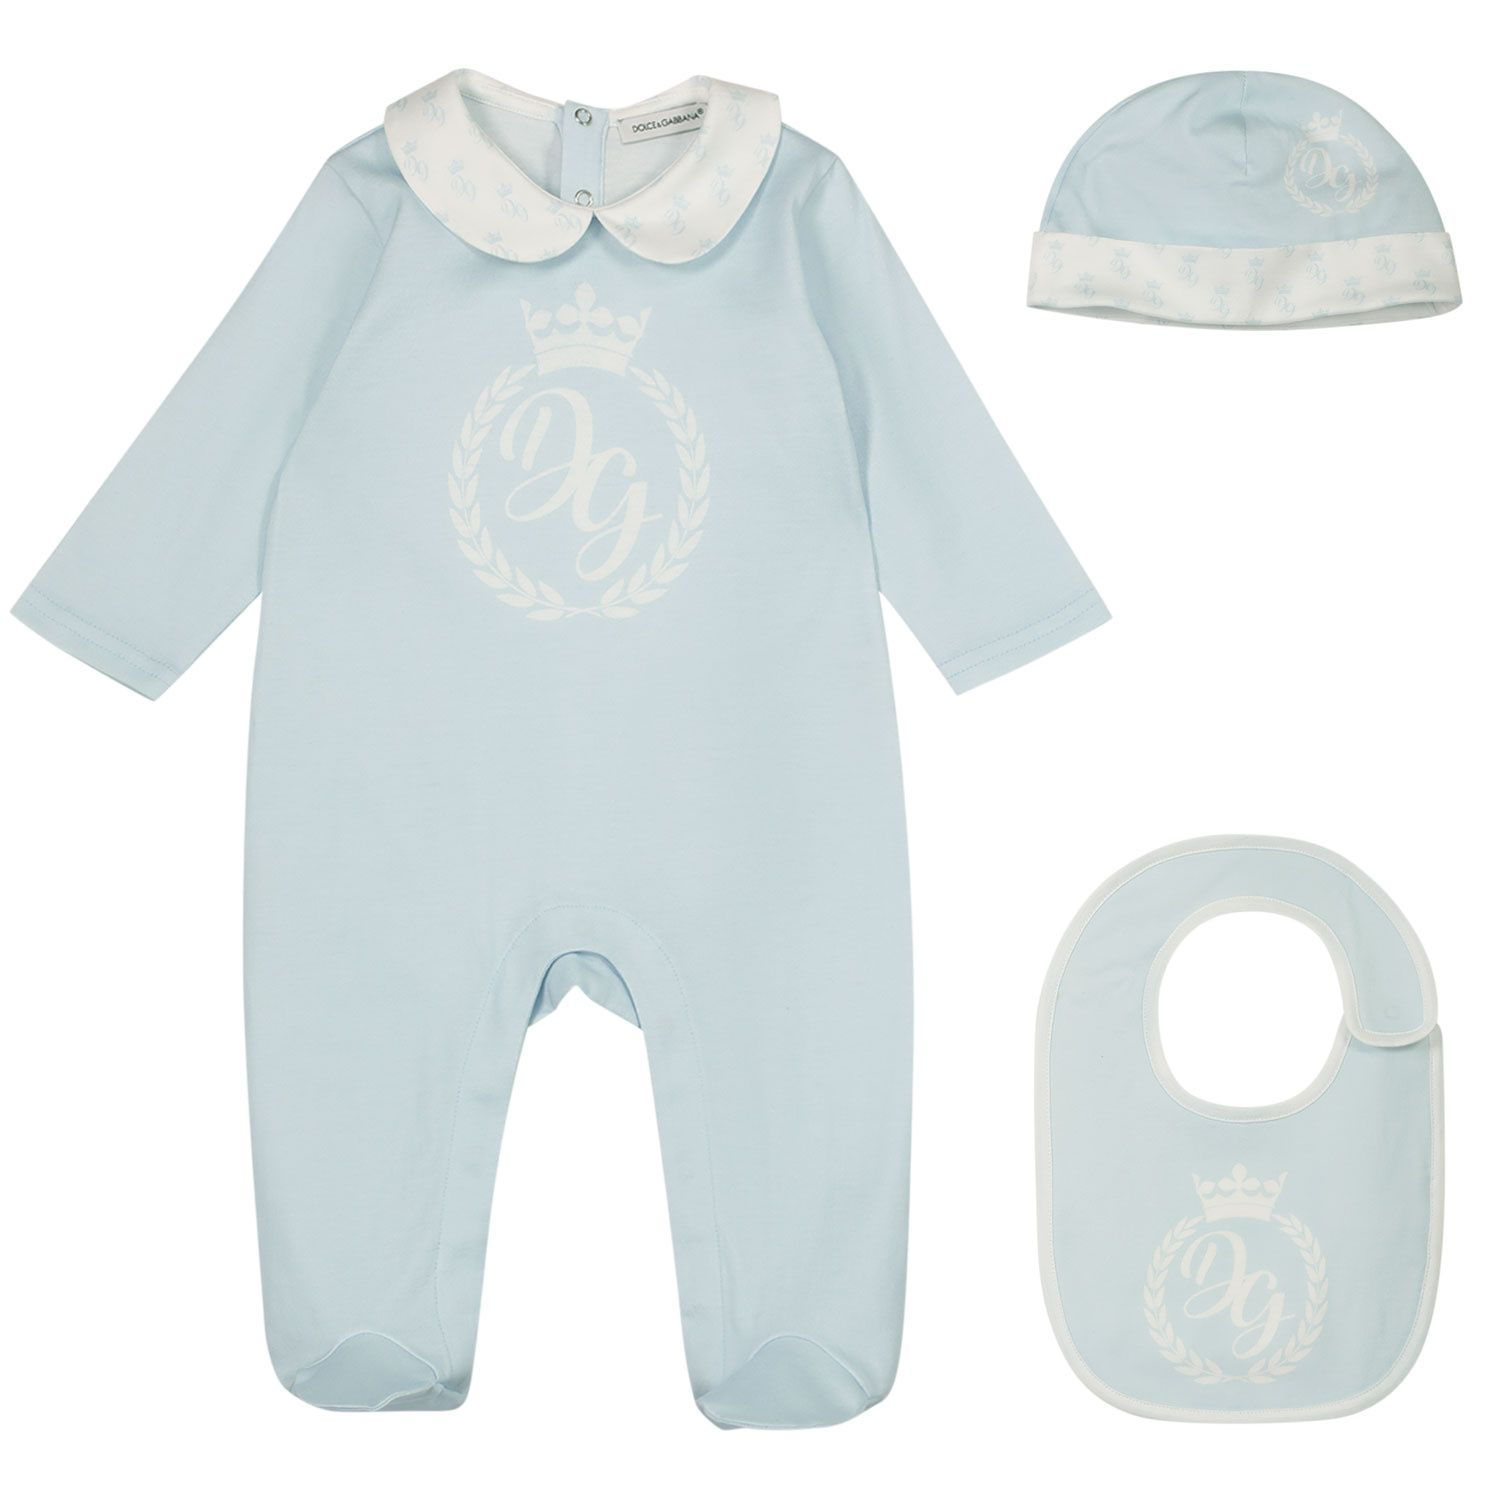 Picture of Dolce & Gabbana L1JG20 G7VVE baby playsuit light blue